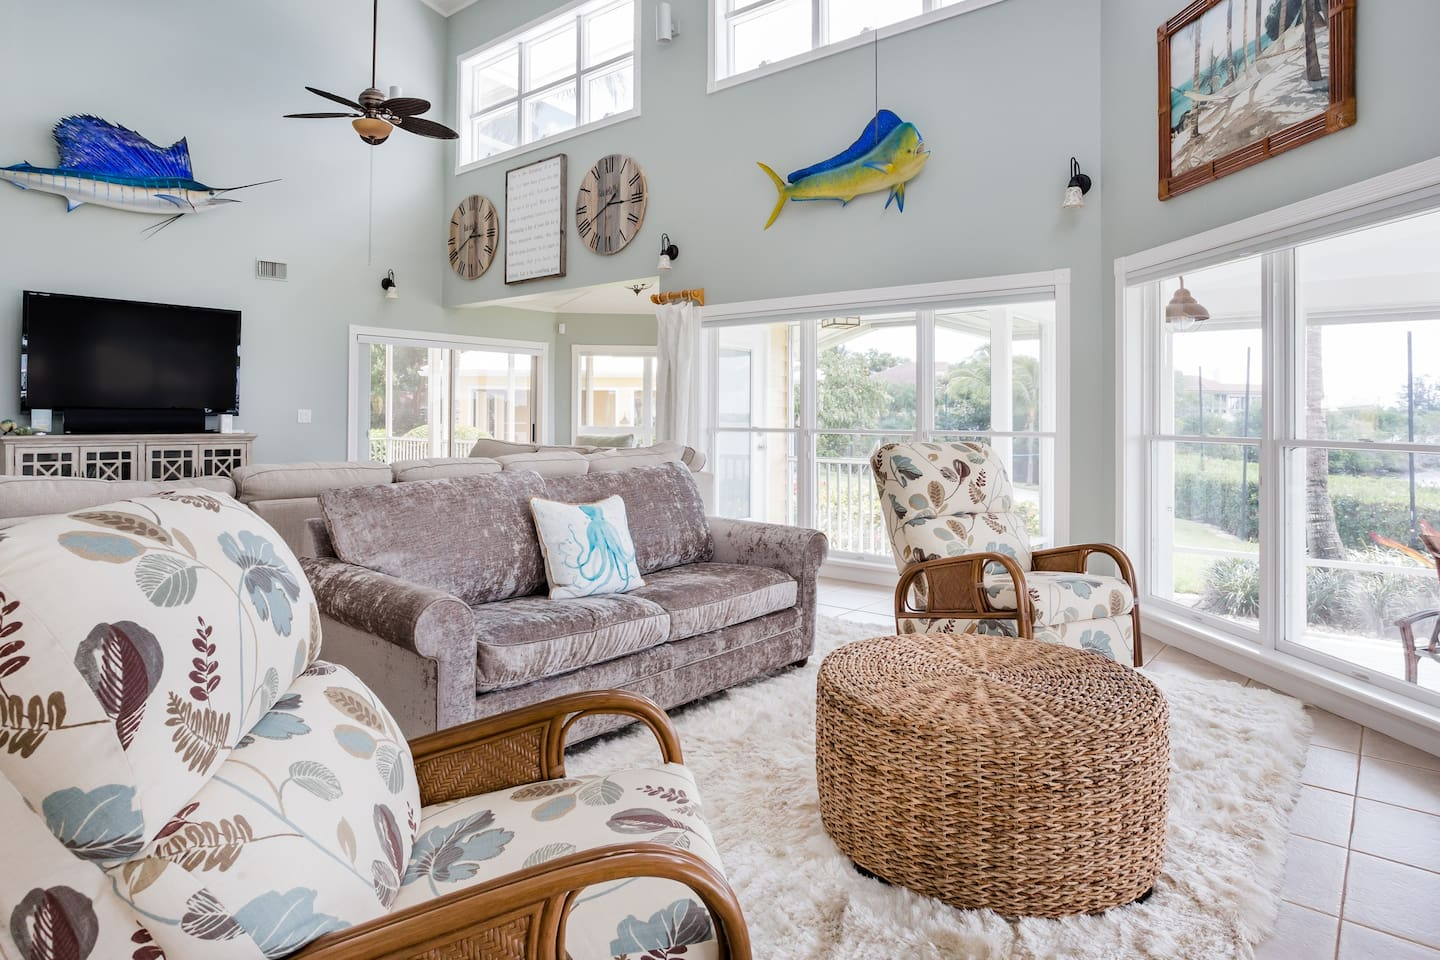 Best Airbnbs in Florida